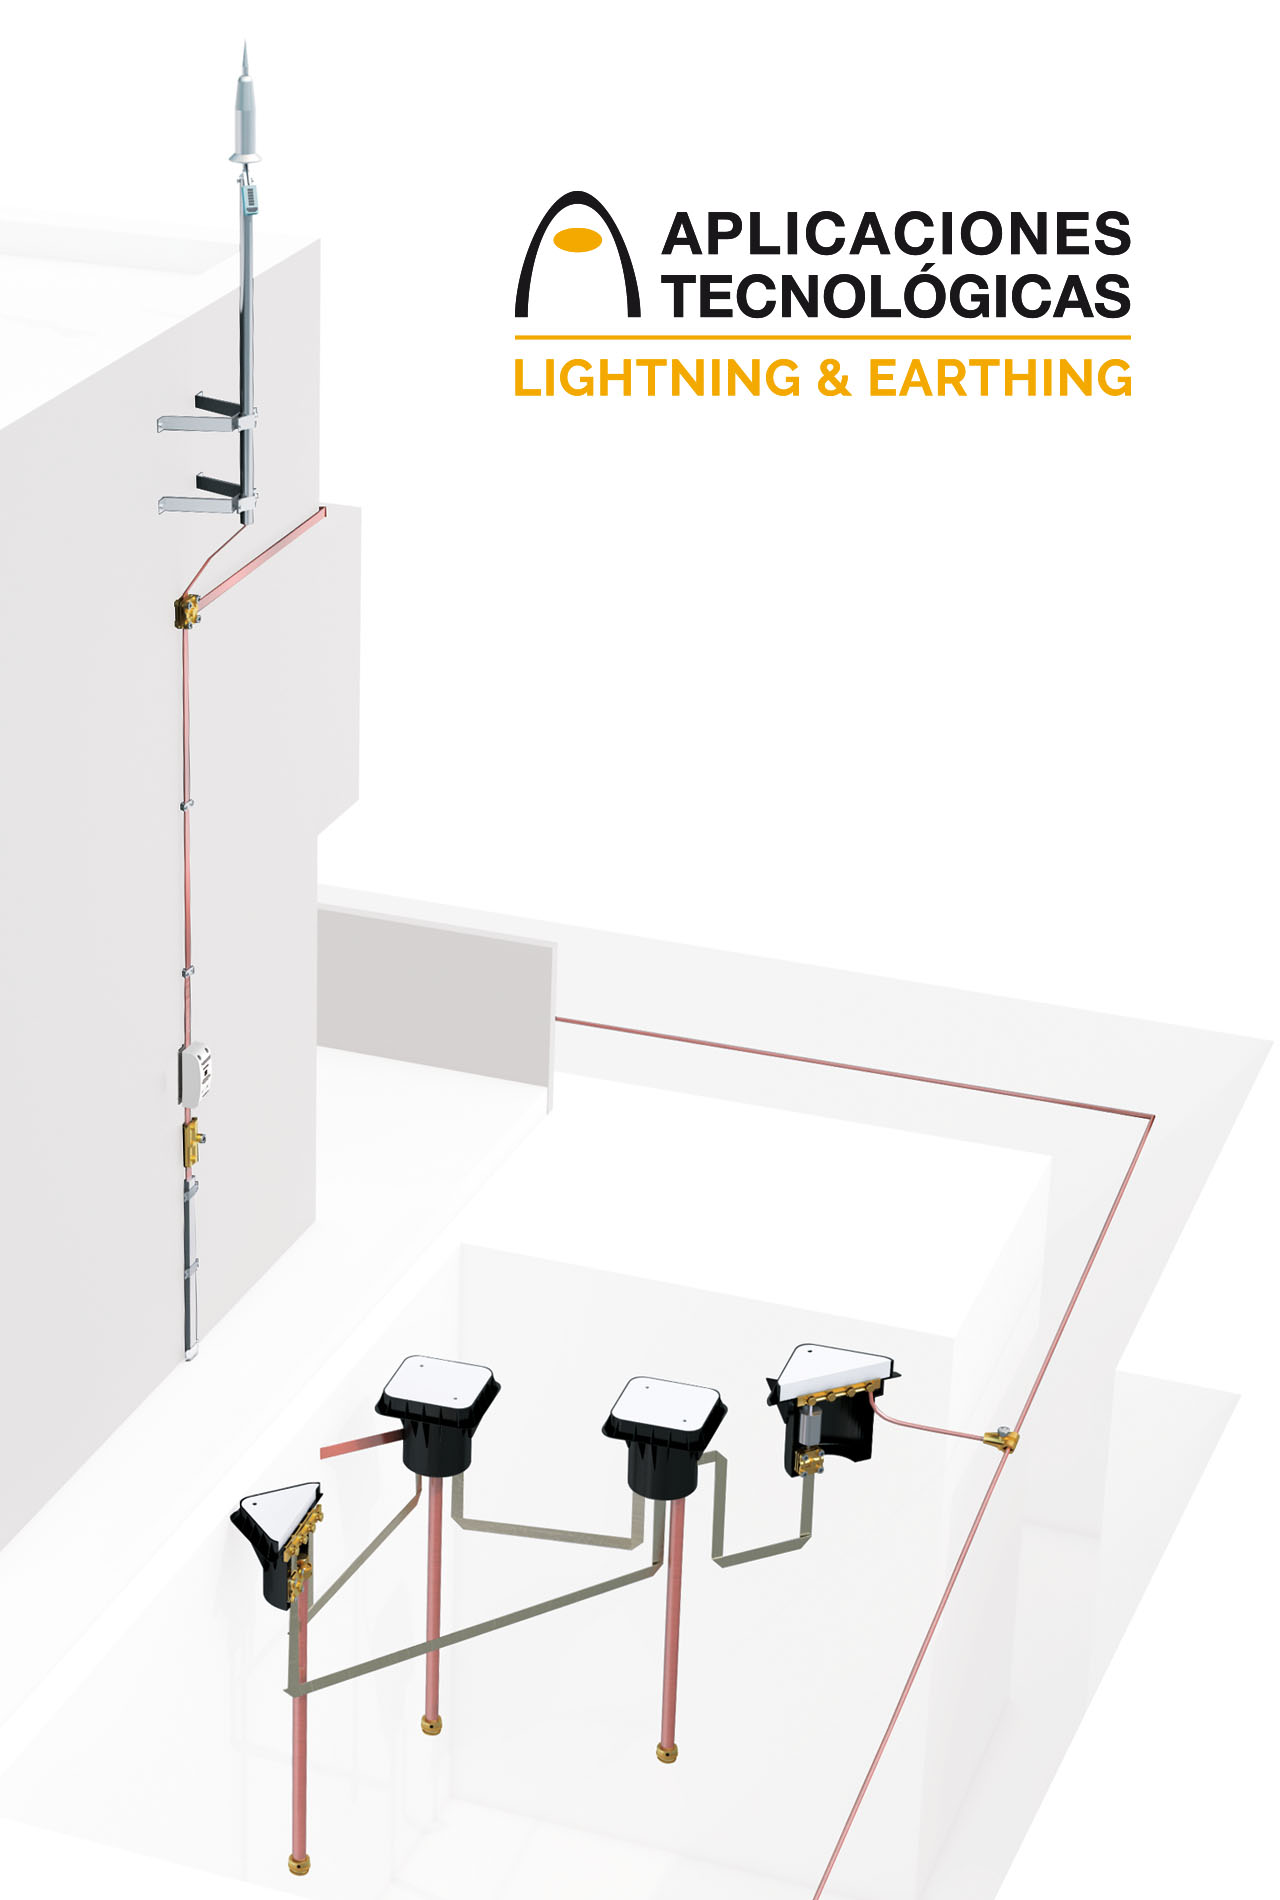 Lightning rod, a permanent measure for protection of occupational risks caused by lightning strikes